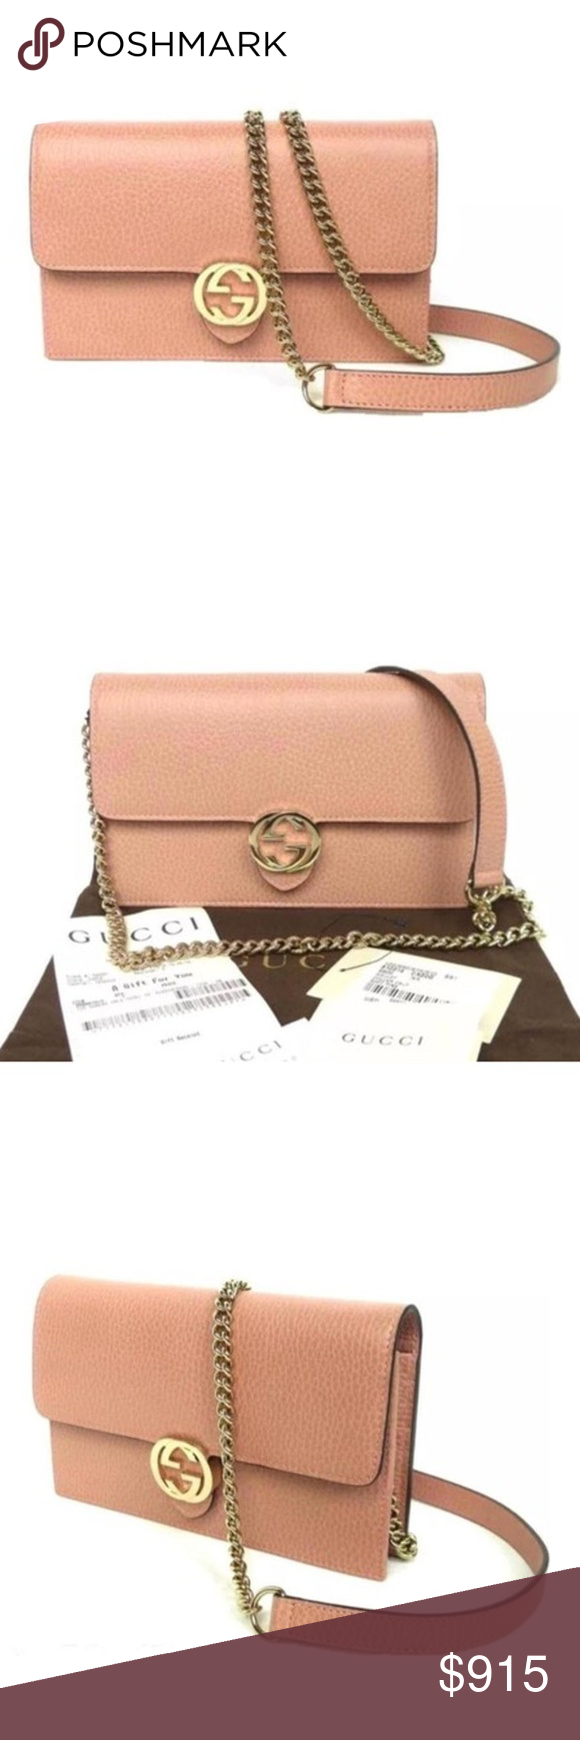 54256531928 Gucci Chain Wallet Icon Gg Pink Leather Cross Body Authentic GUCCI fabulous  instantly recognizable dusty pink